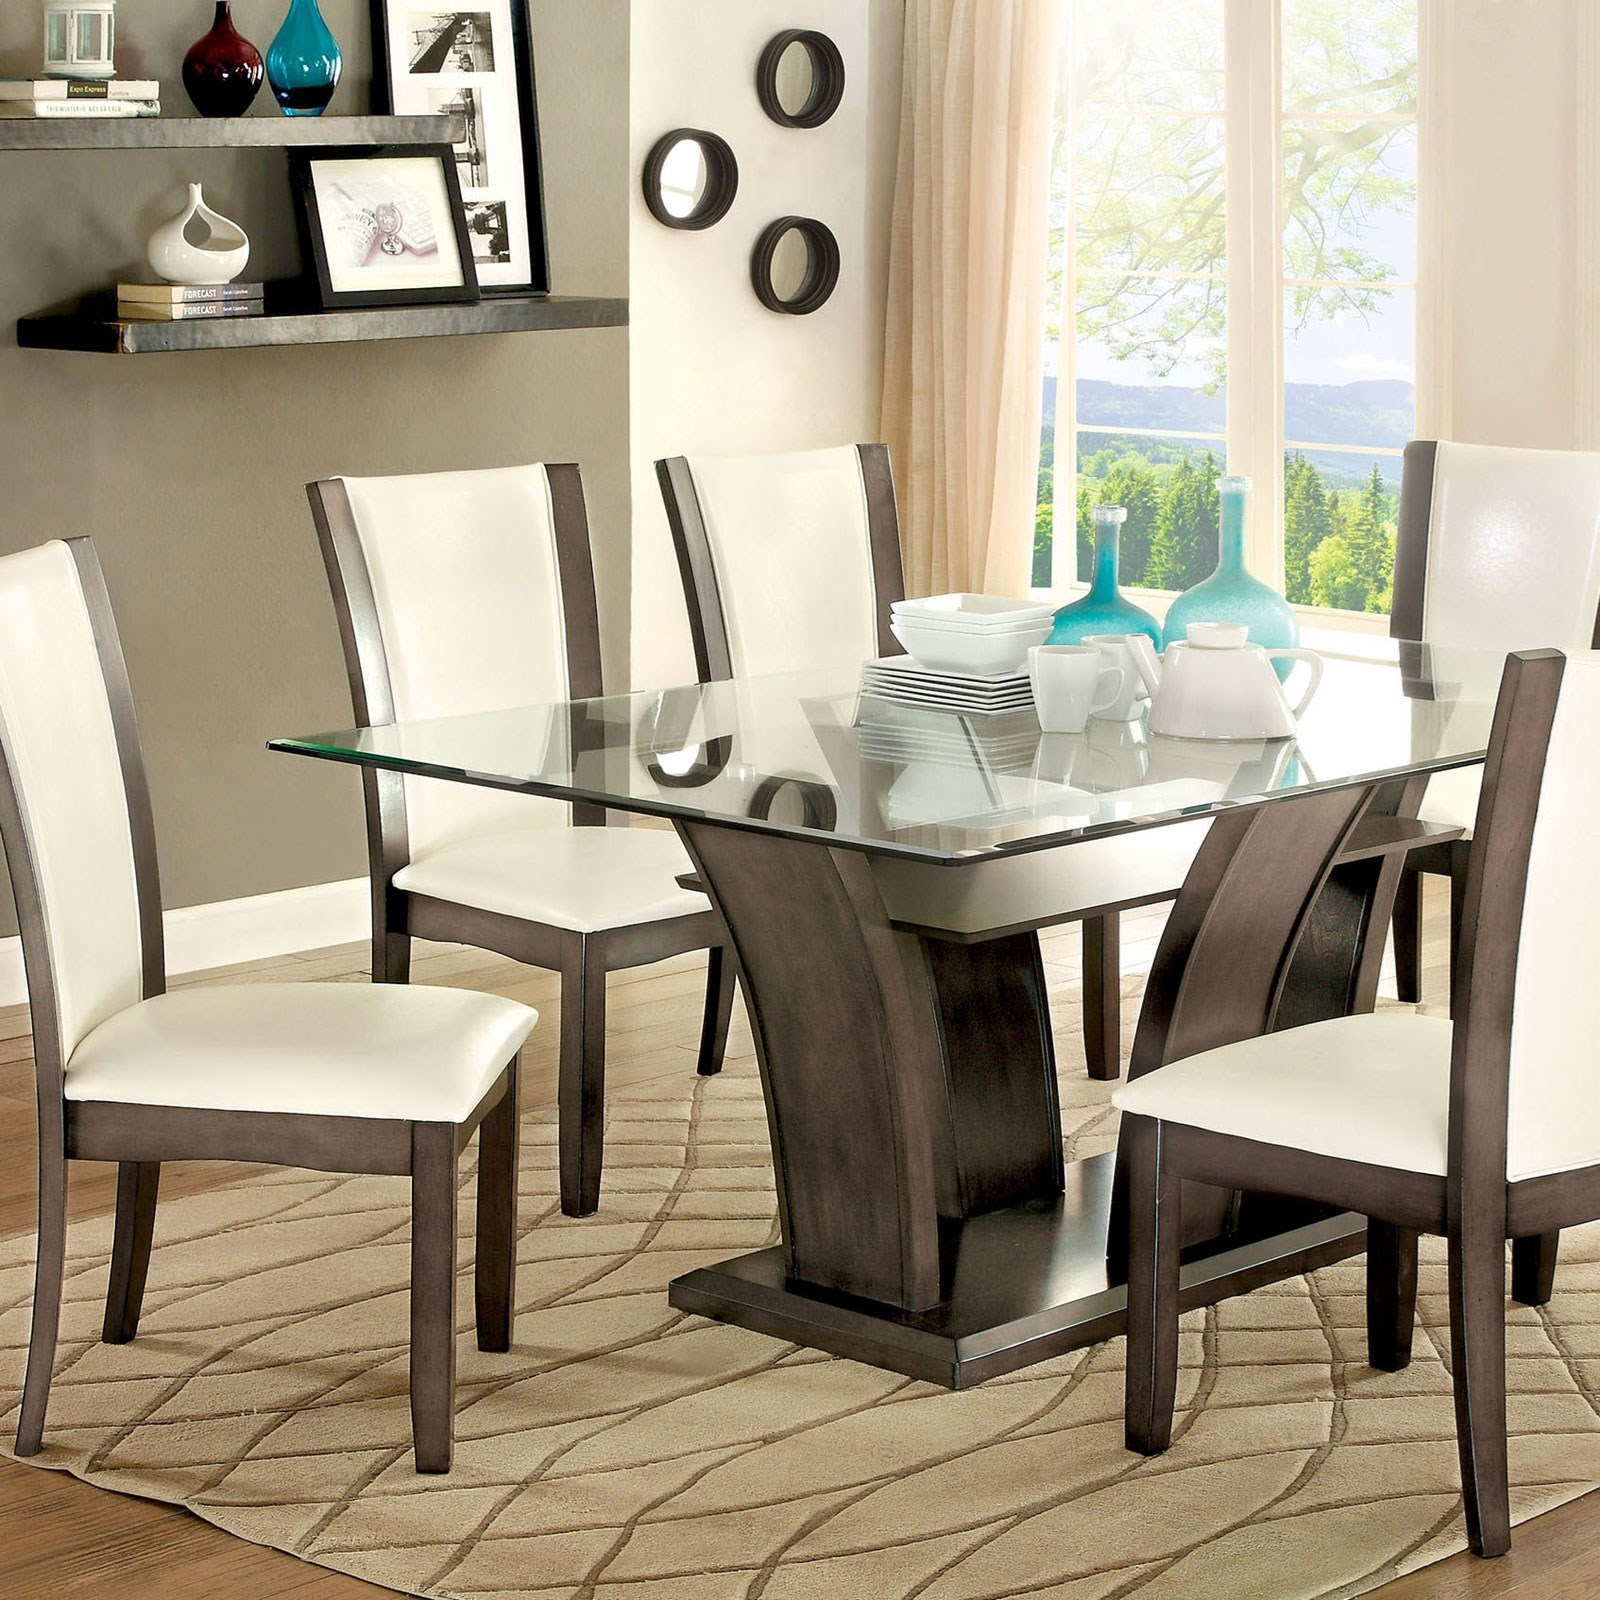 Picture of: Furniture Of America Foa Manhattan I Ii Cm3710gy T Table Transitional Rectangular Dining Table With Glass Top Del Sol Furniture Dining Tables